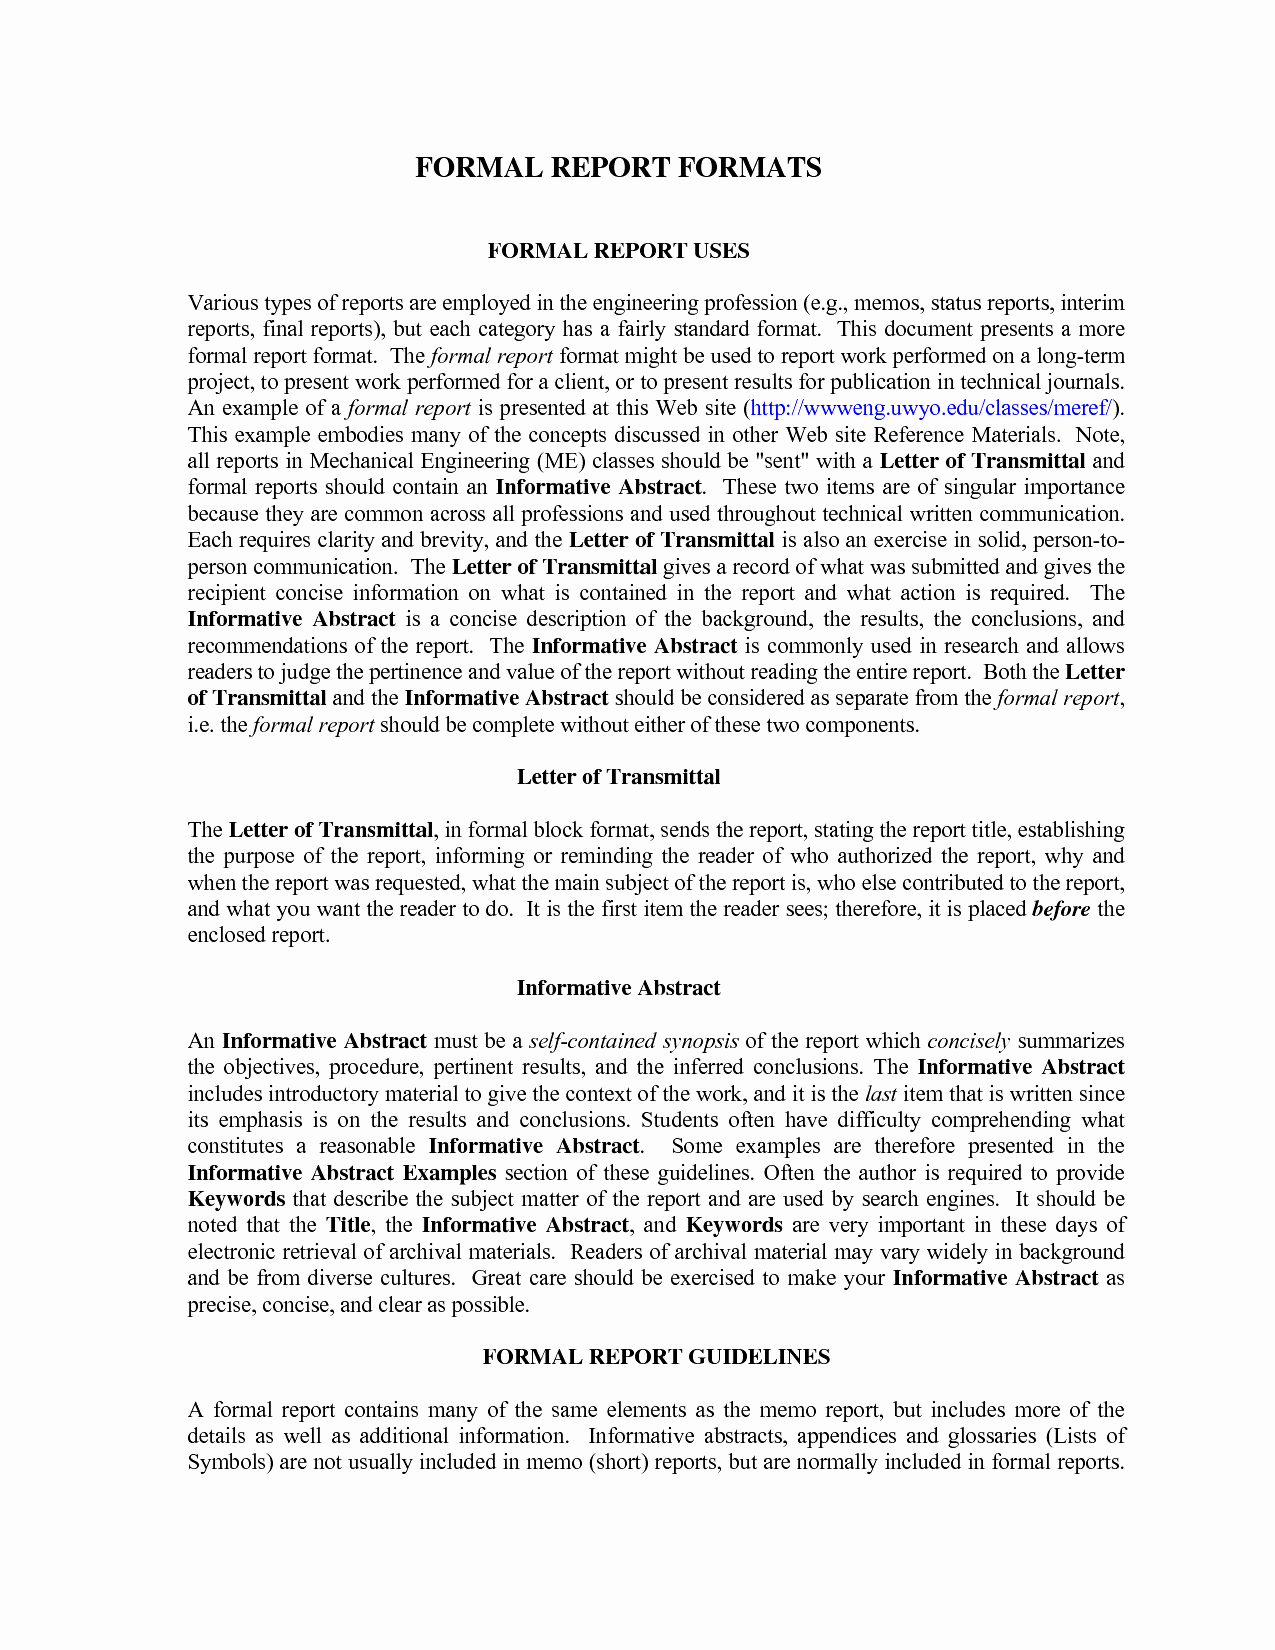 Business Report format Template Best Of Analytical Report format Example Mughals